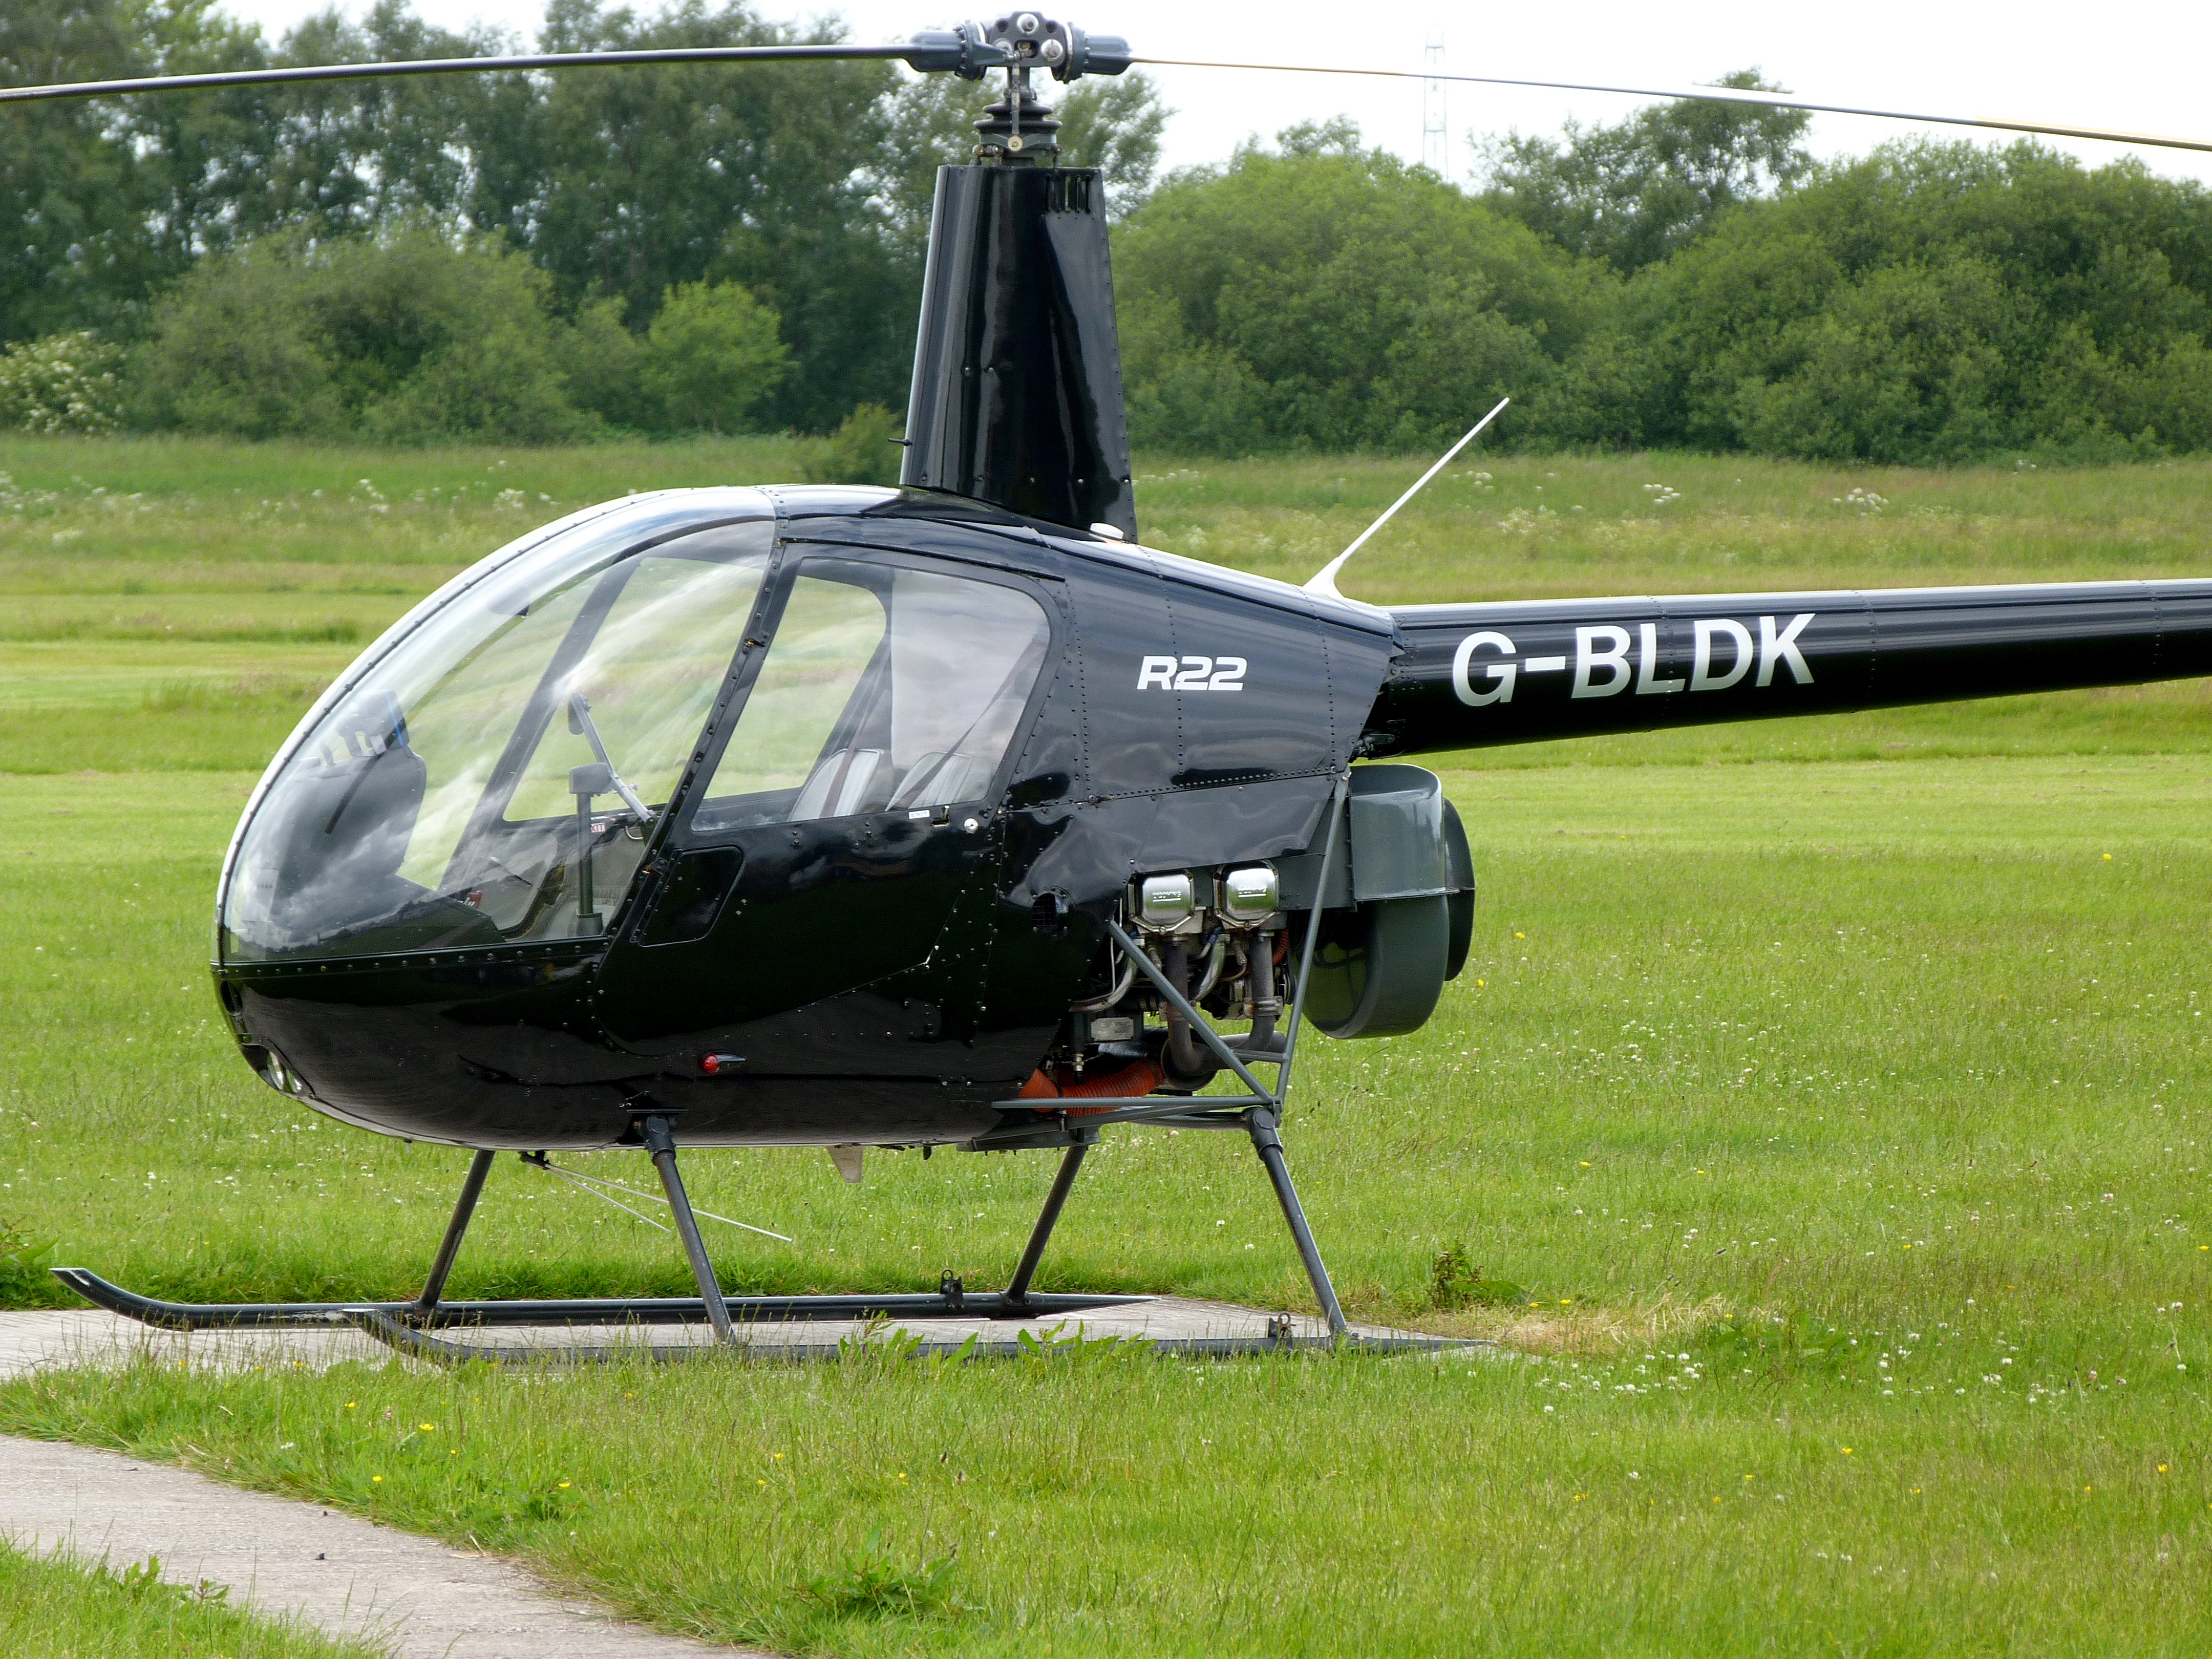 helicopter to work with File G Bldk Robinson R22  5845857300 on H135M 46 likewise Excavator Home Made 125596589 furthermore Autorotating Seeds To Fly Or To Die as well File G BLDK Robinson R22  5845857300 moreover Watch.